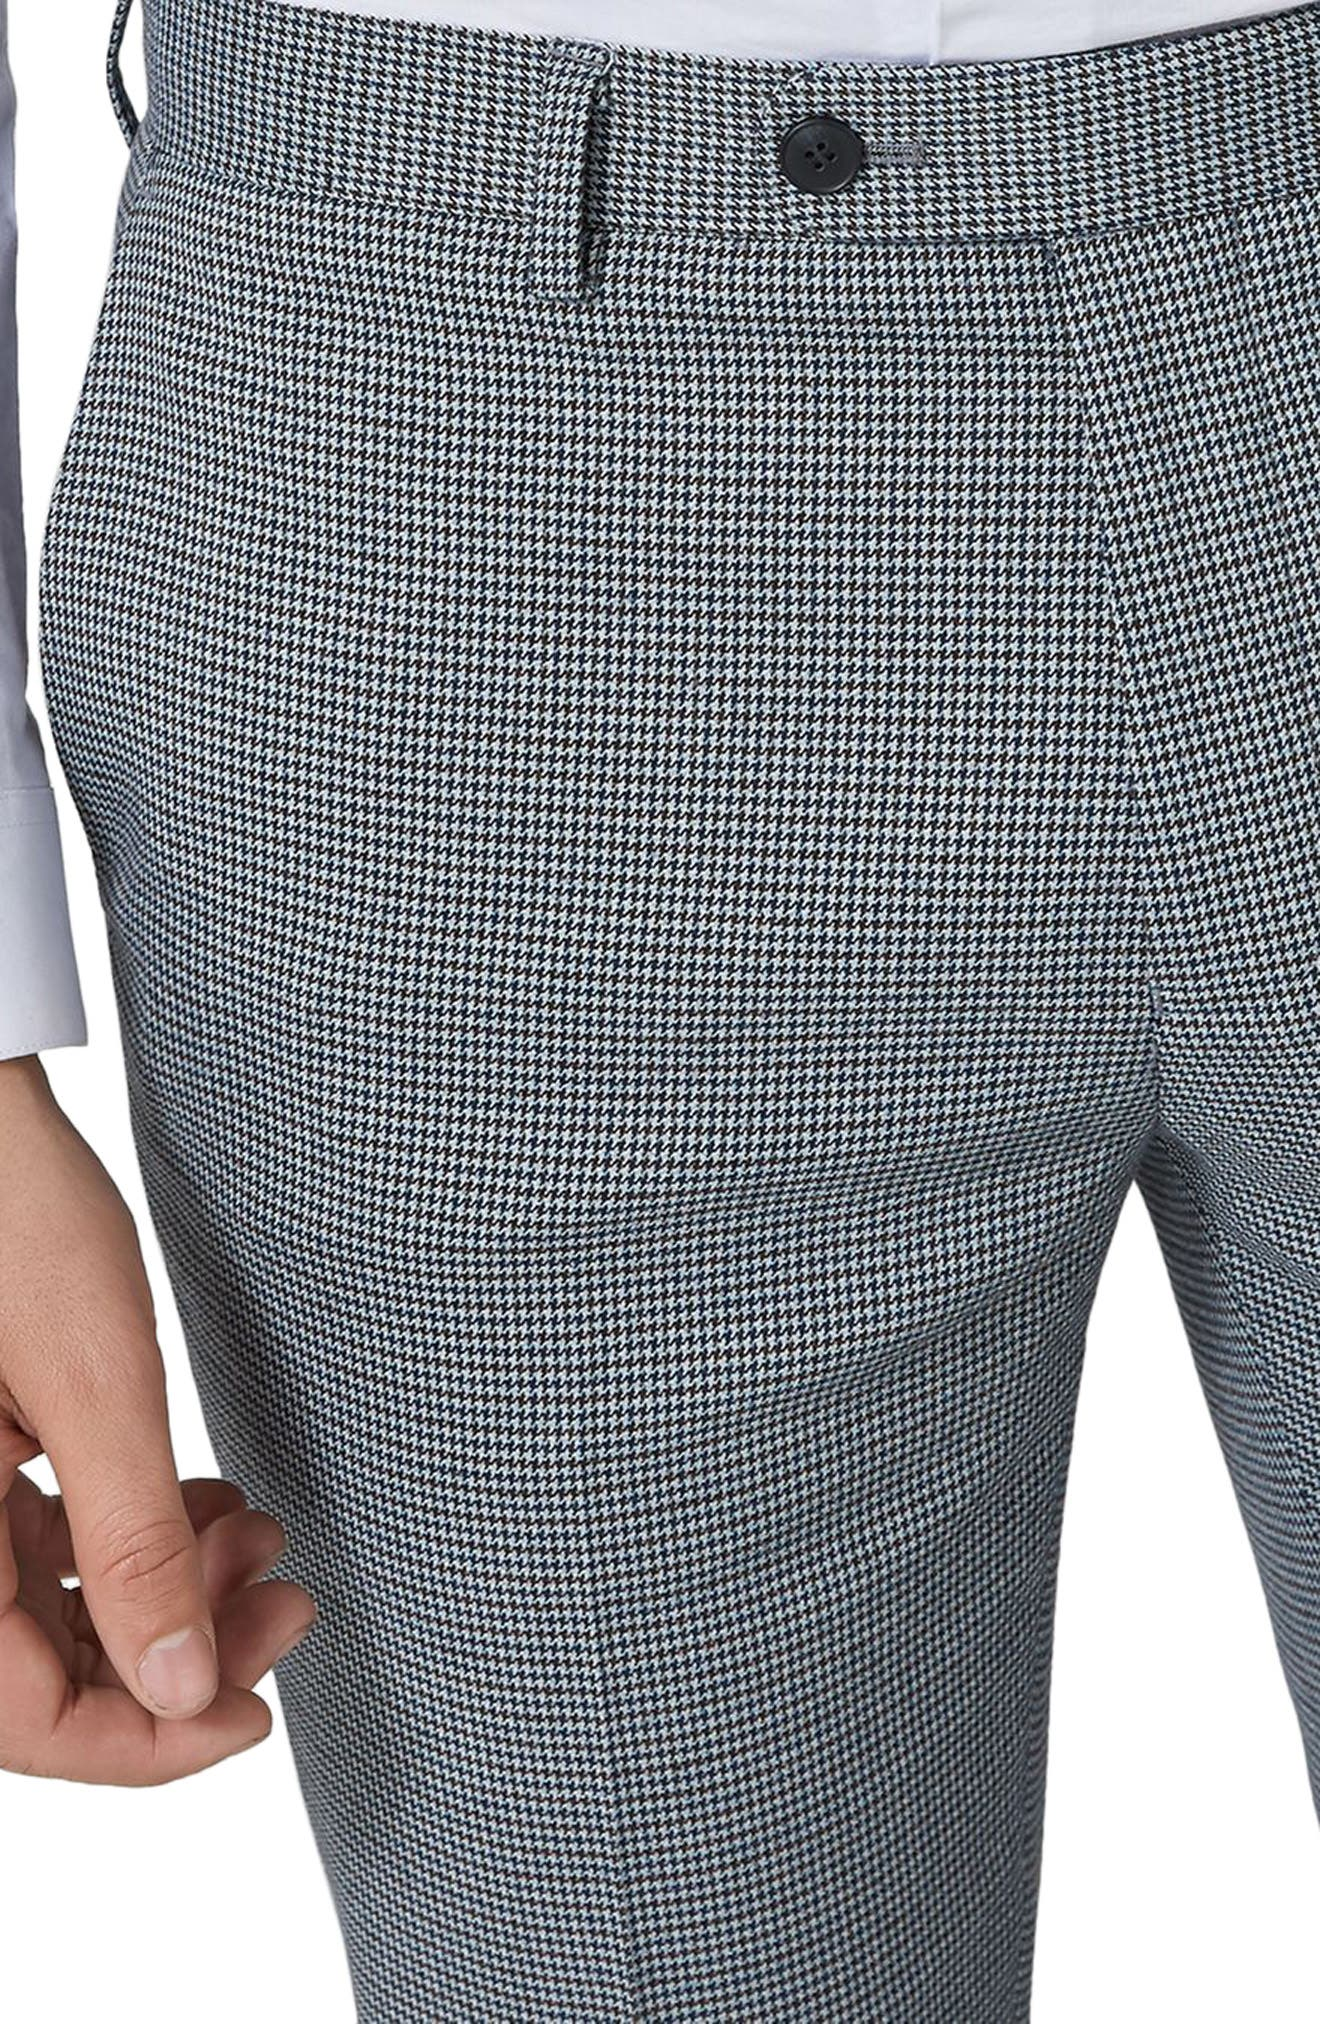 Skinny Fit Houndstooth Suit Trousers,                             Alternate thumbnail 3, color,                             300